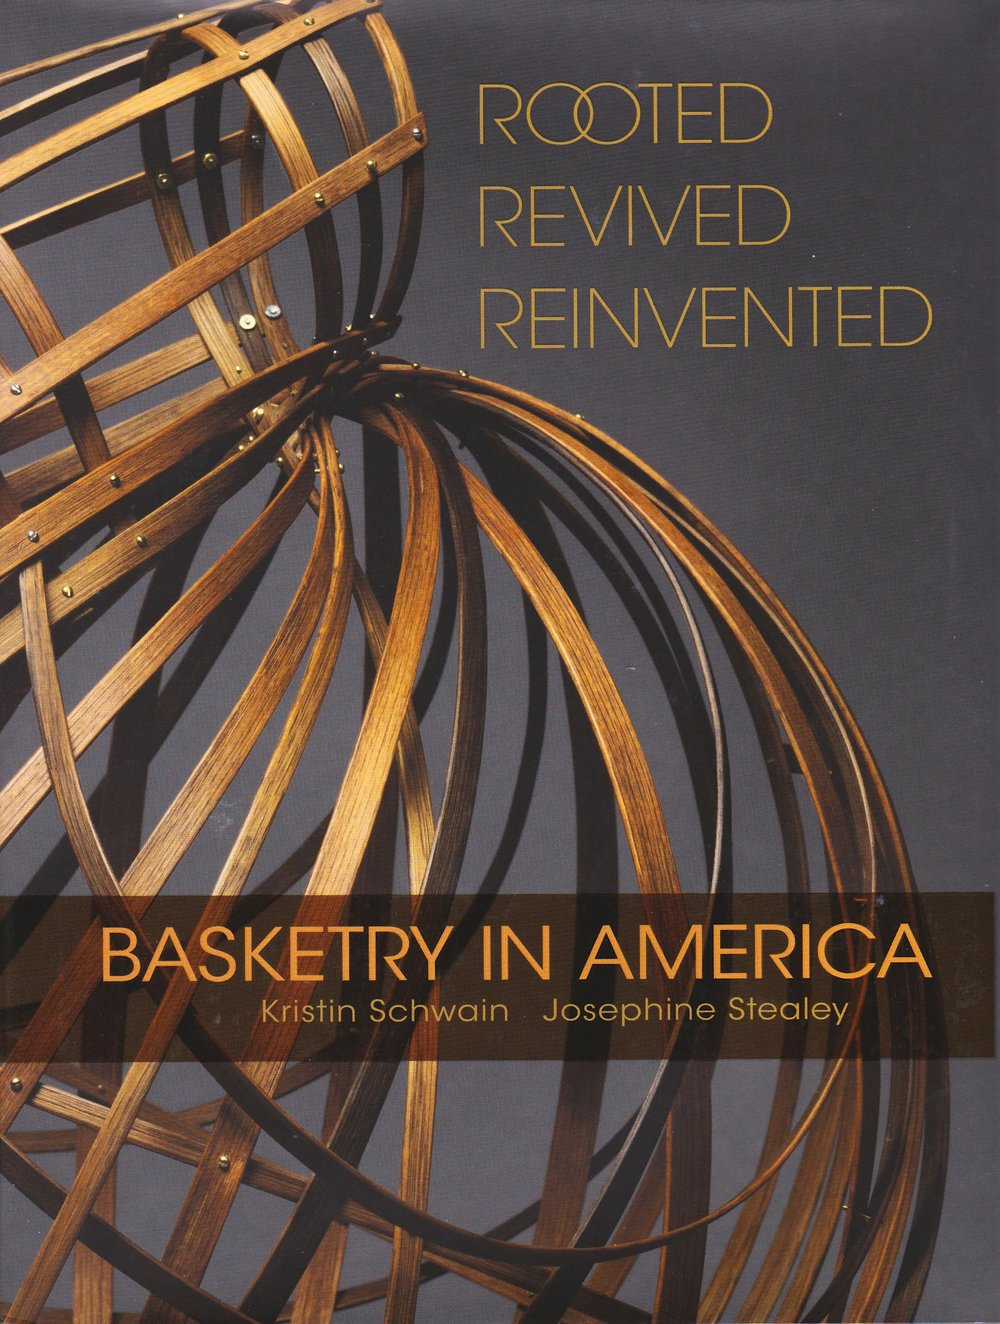 BASKETRY IN AMERICA